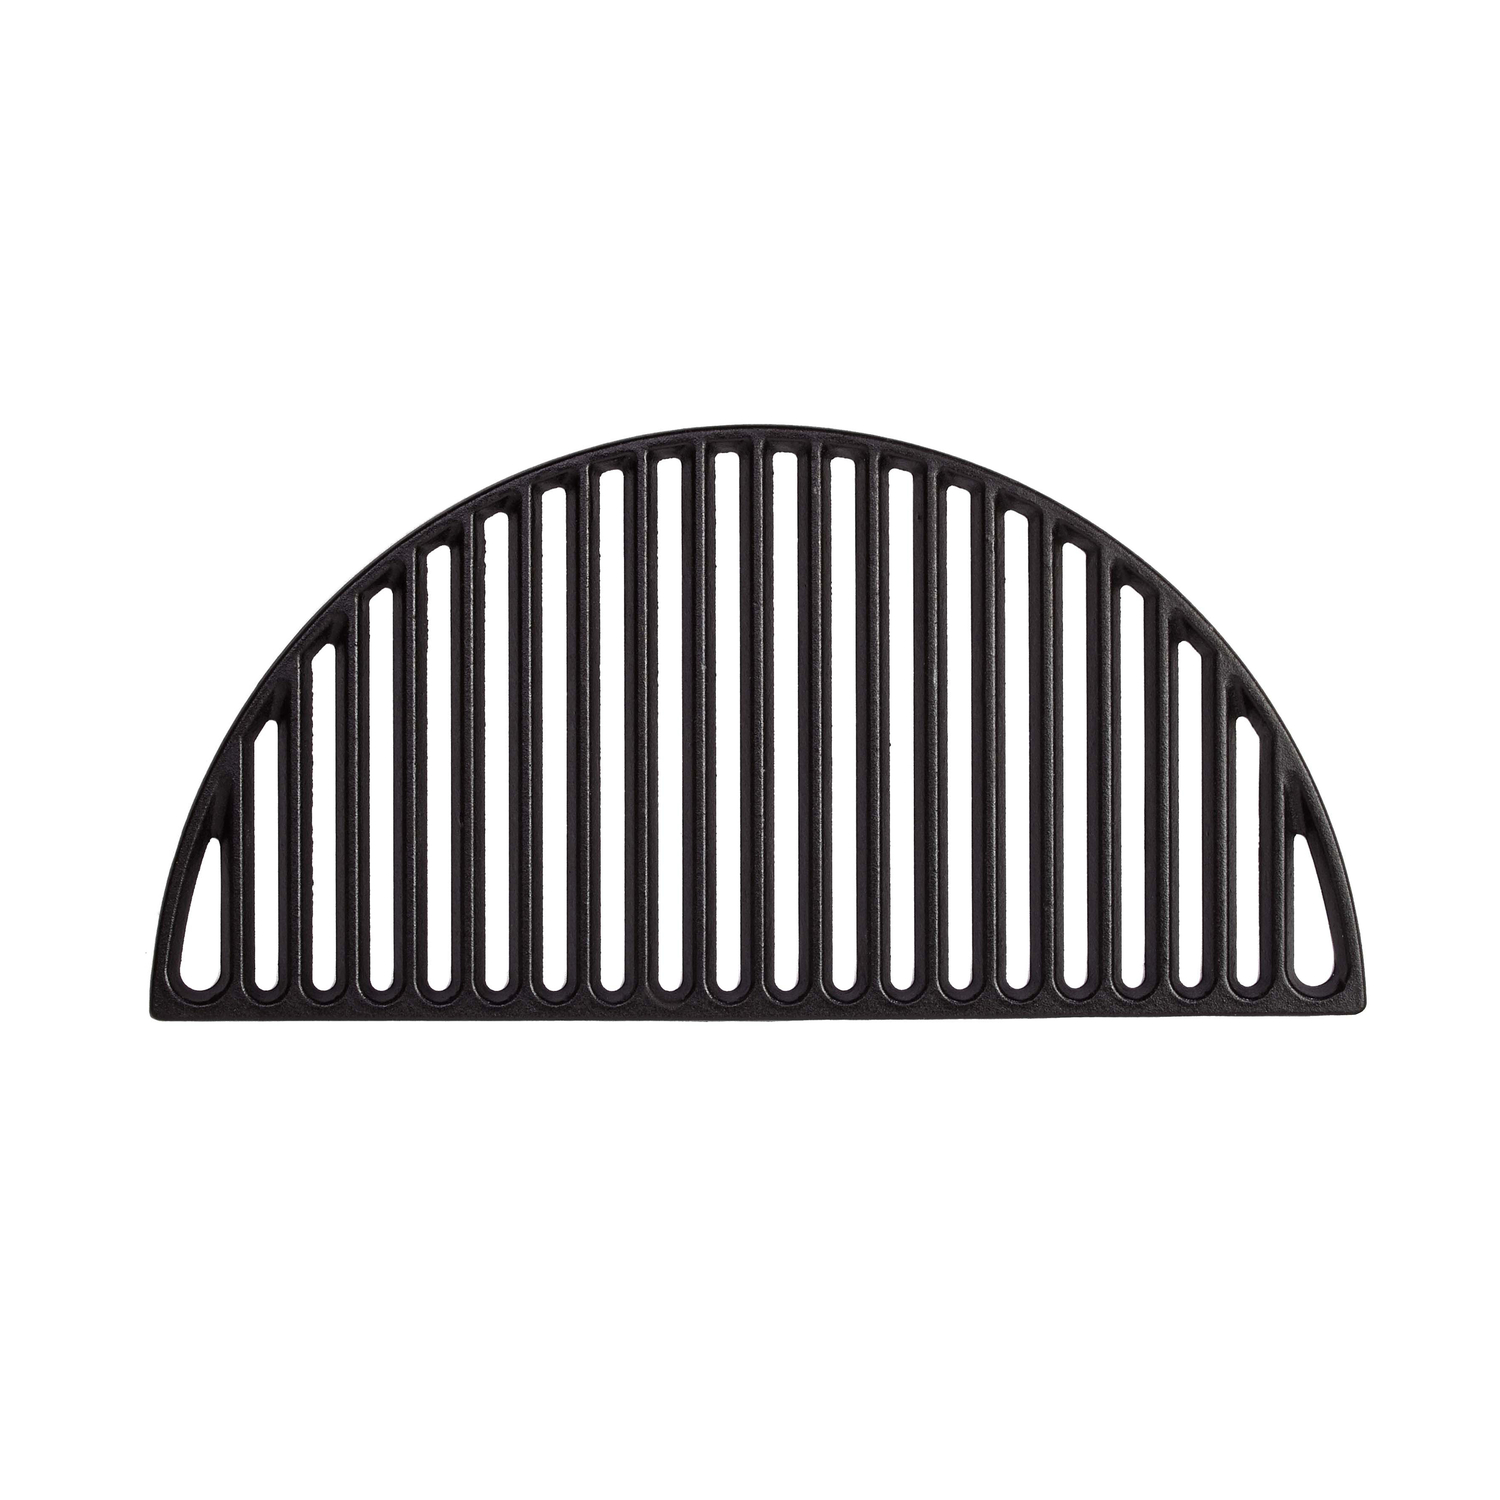 Kamado Joe  Classic  Cast Iron  Grill Cooking Grate